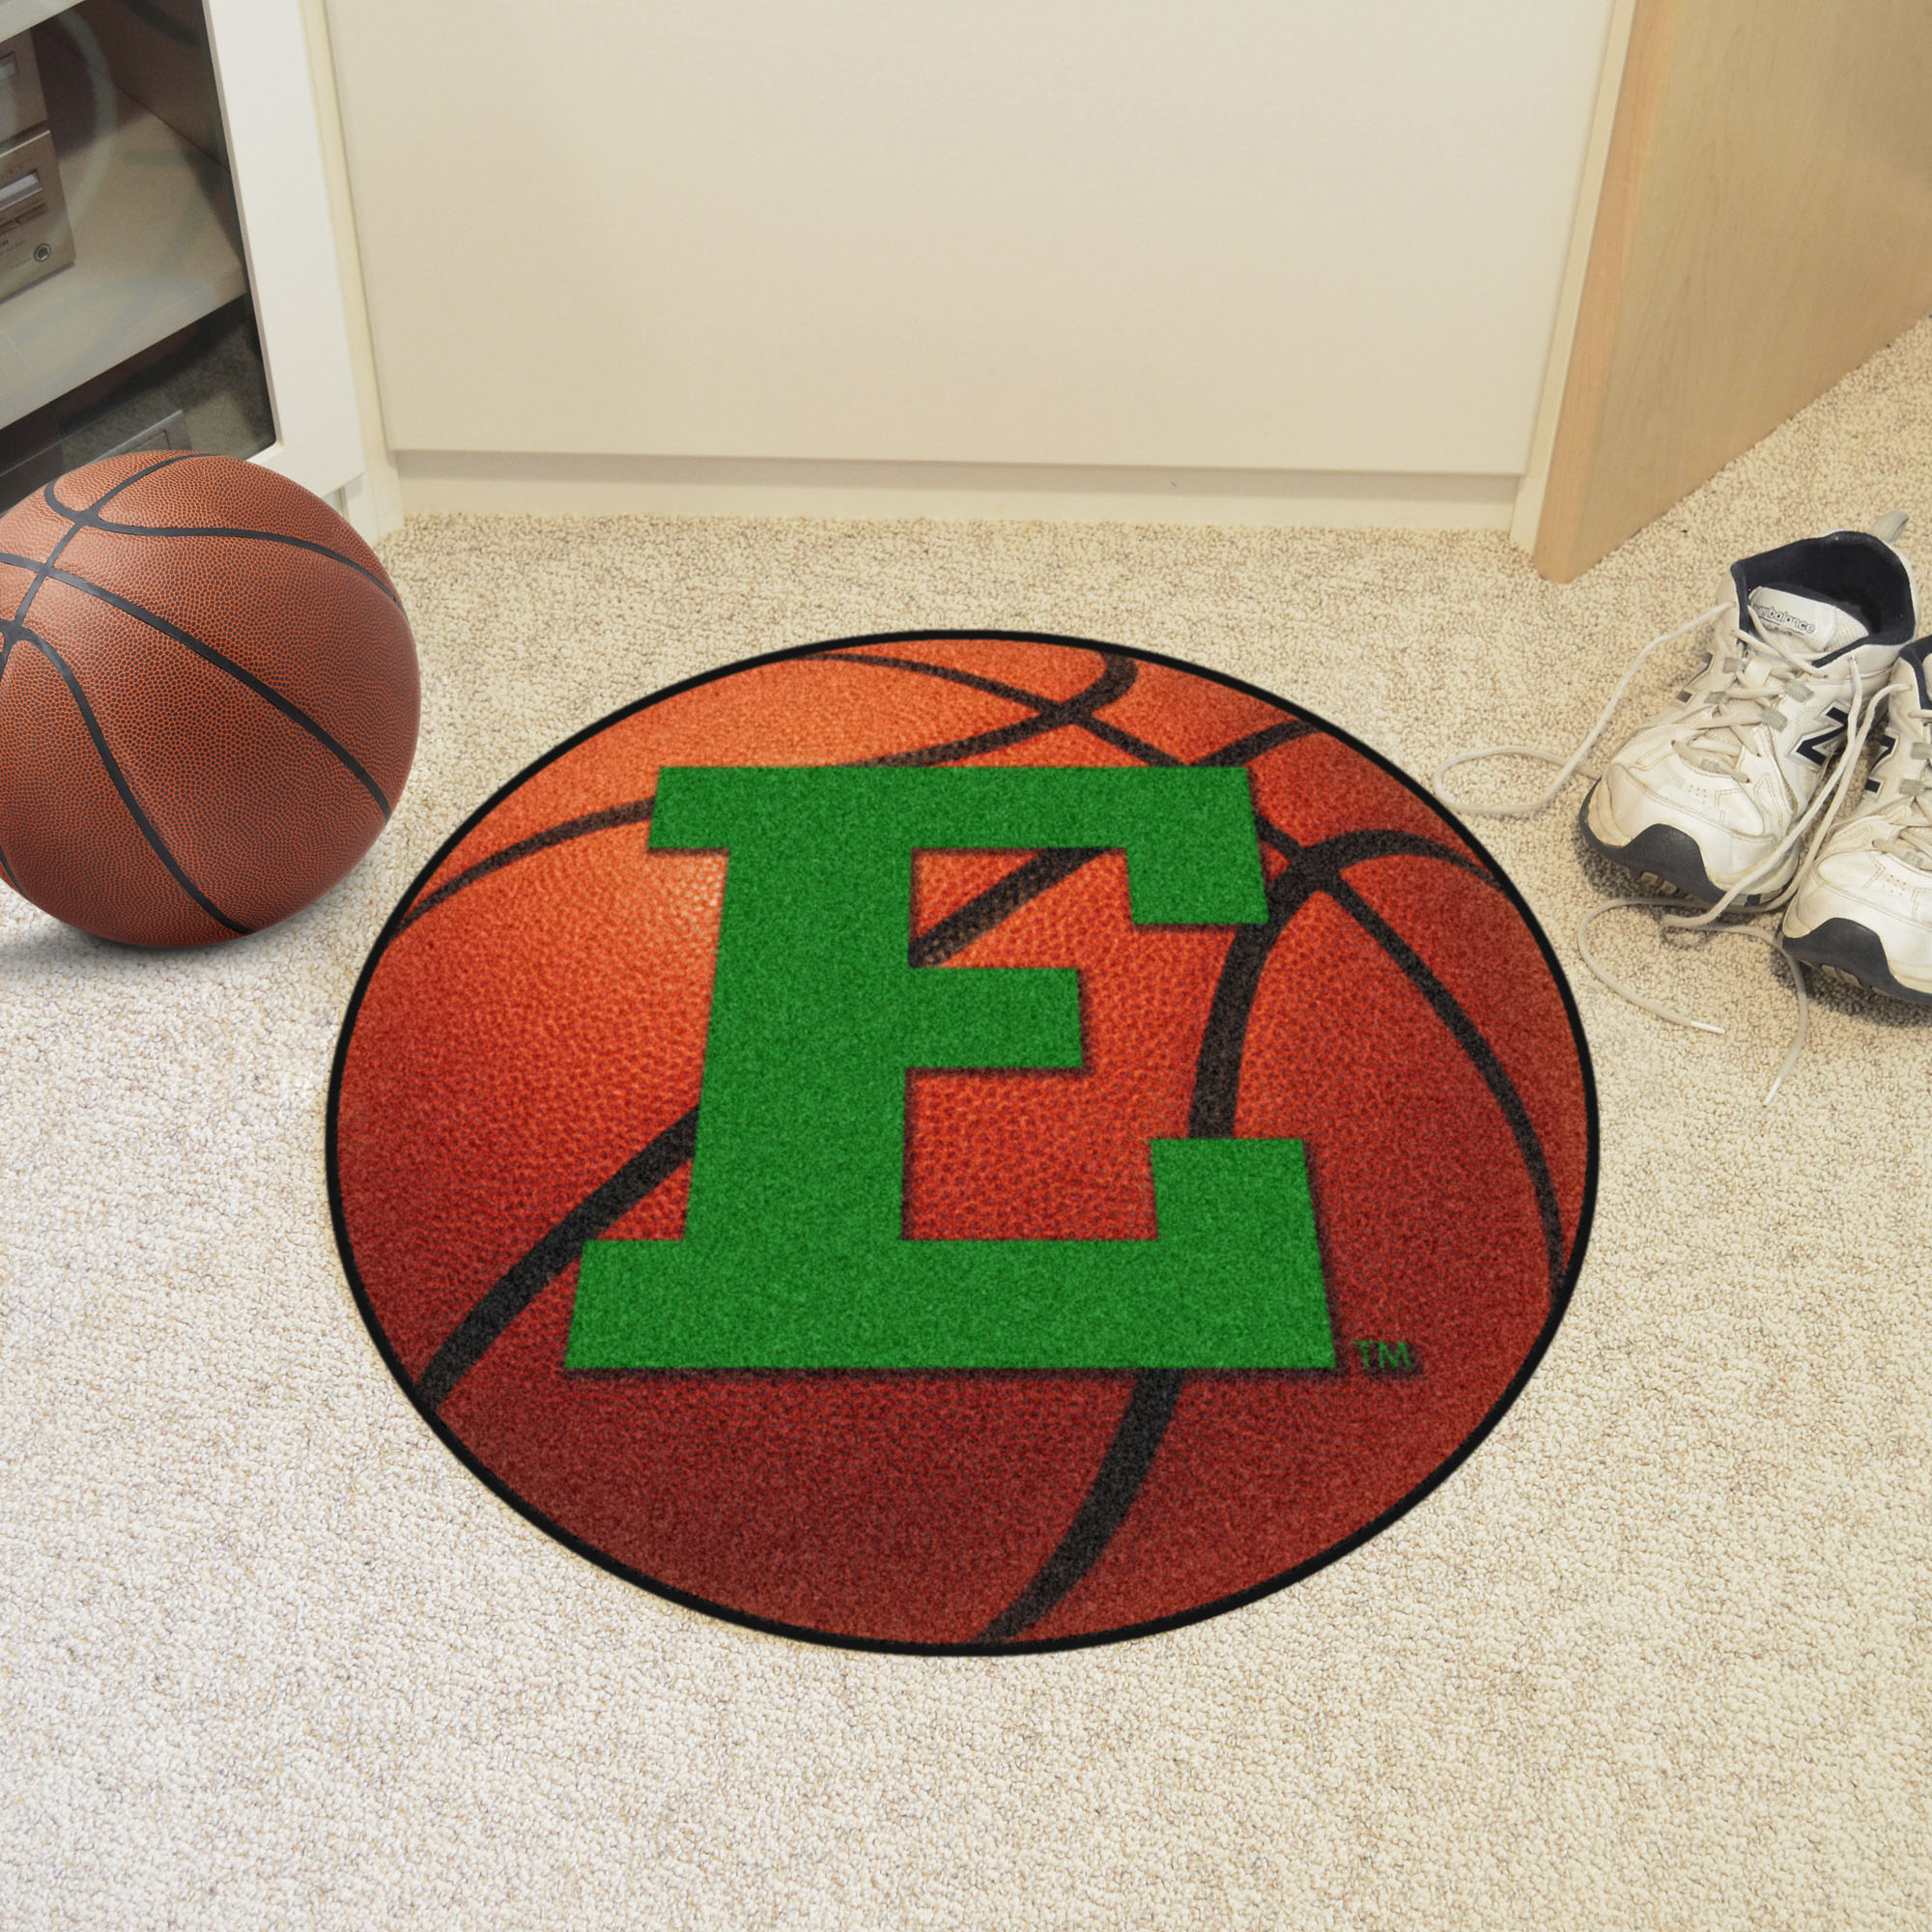 Eastern Michigan University Ball Shaped Area Rugs (Ball Shaped Area Rugs: Basketball)